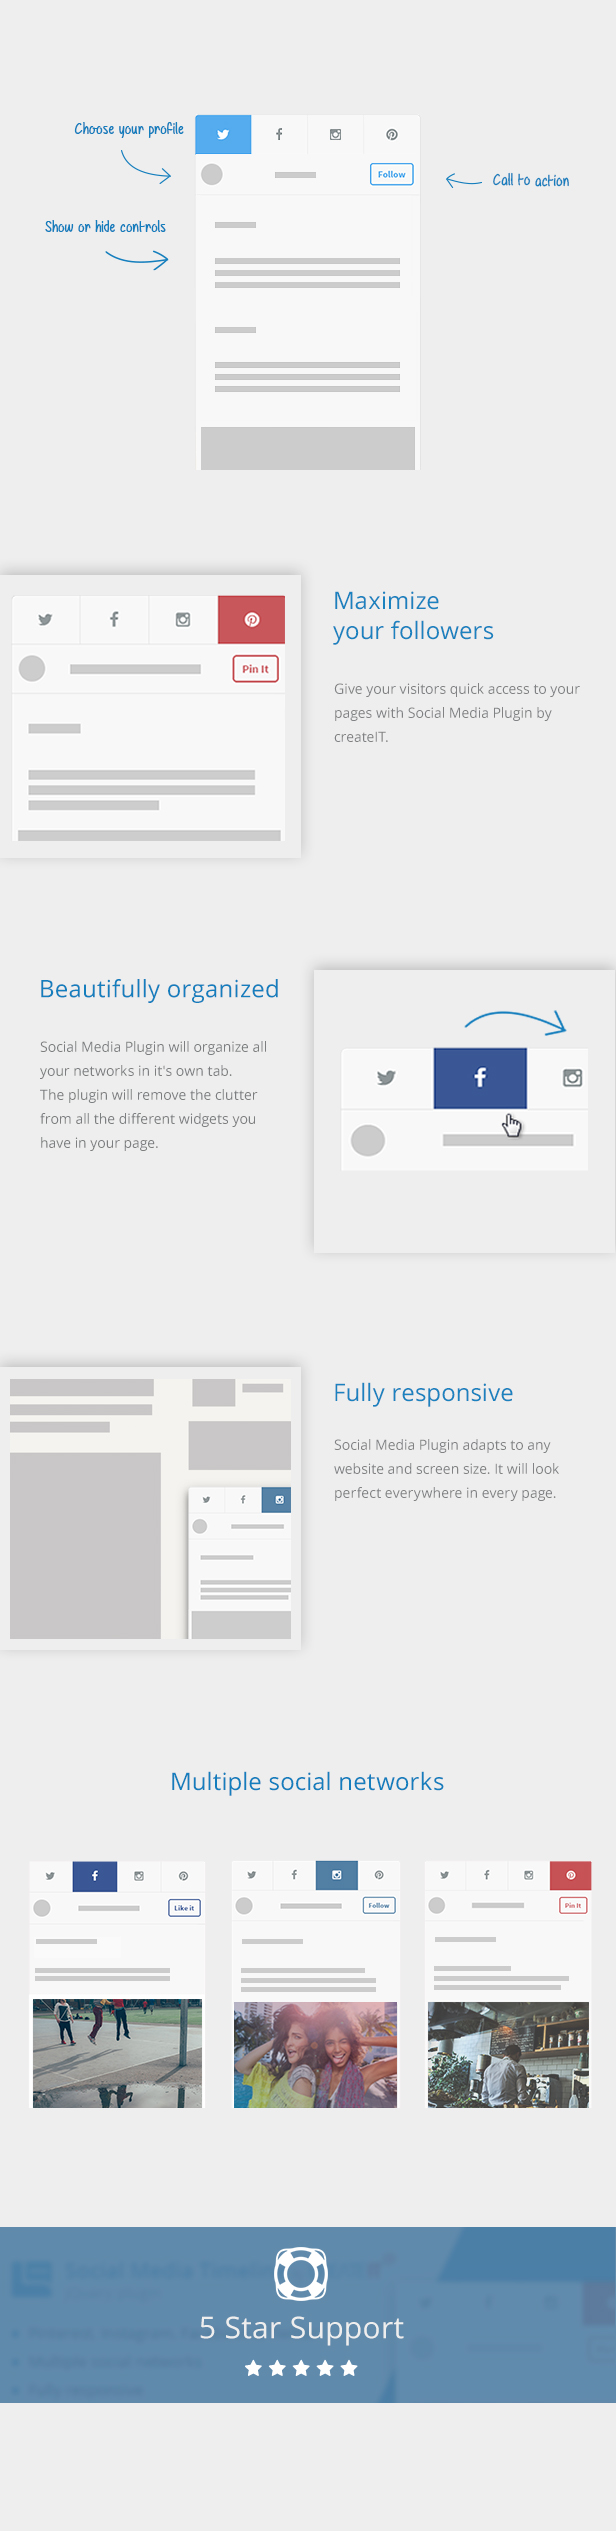 jQuery Social Media Timeline description